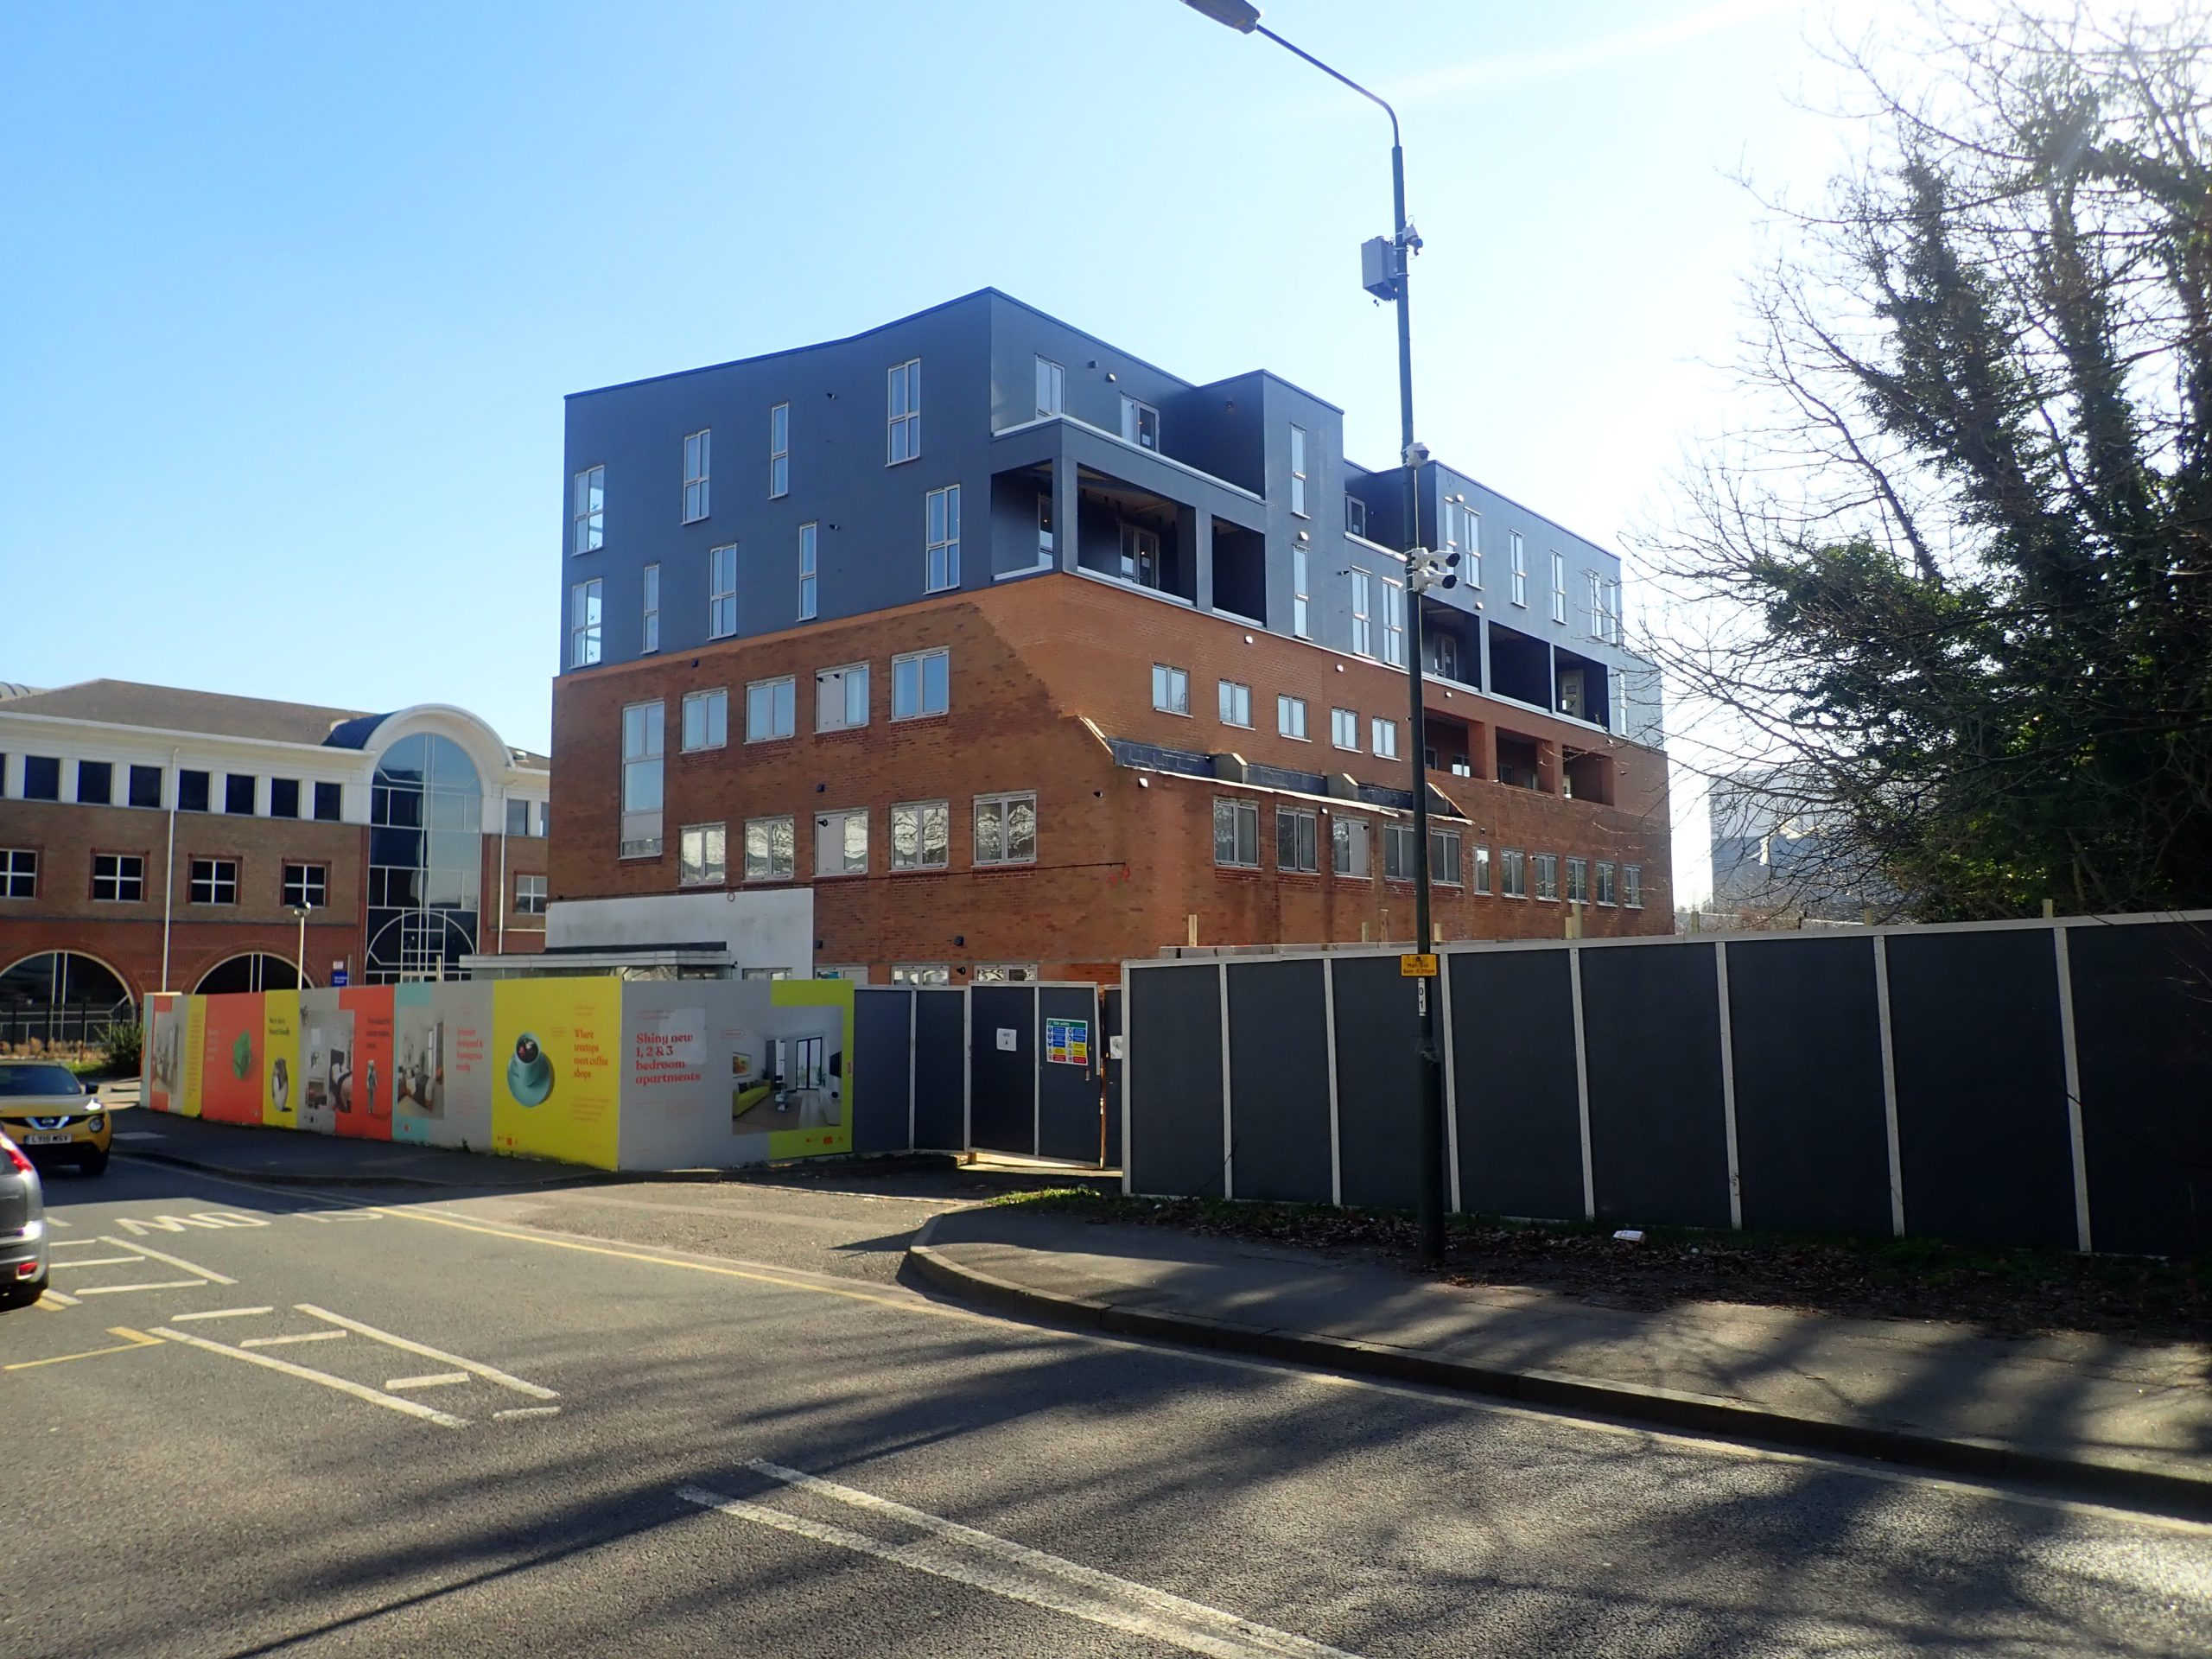 Sidcup's Boomtown development on the way to completion